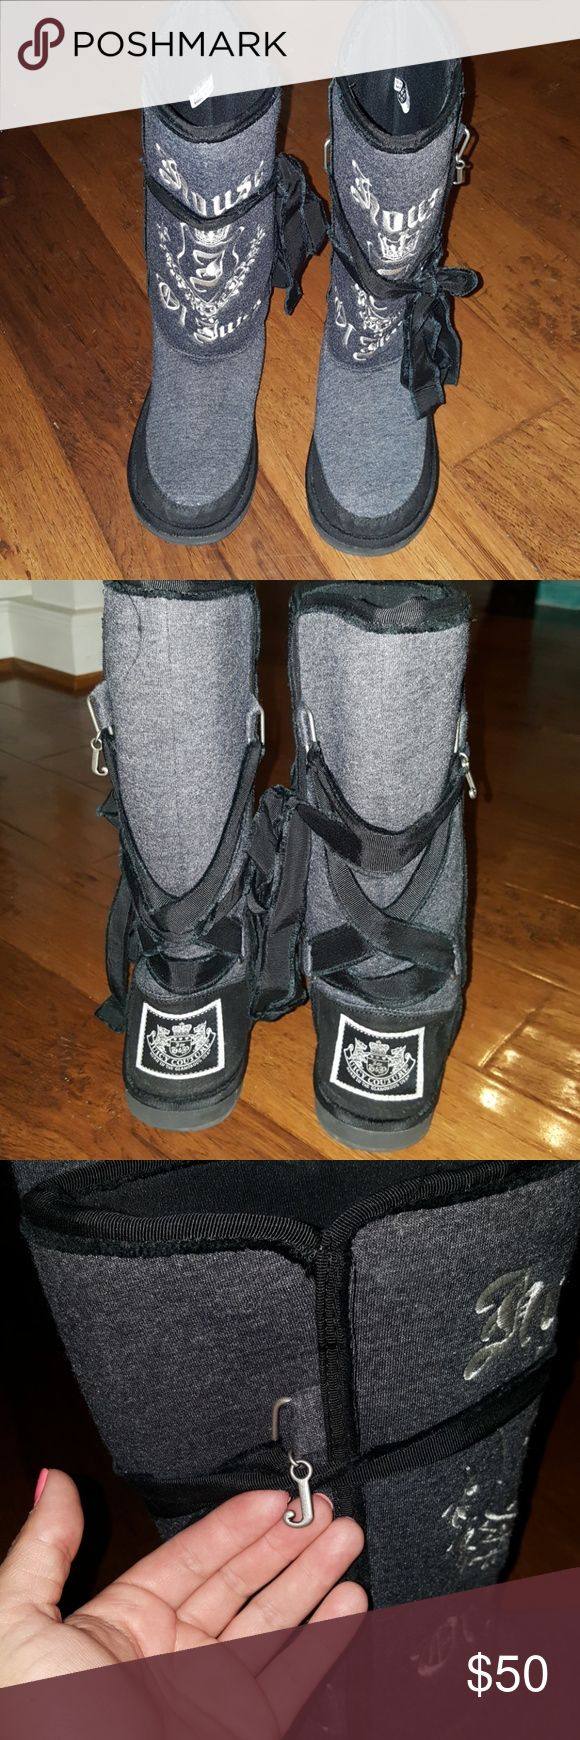 """Sz 6 Juicy Couture gray & black boots VGUC!  They lace up for decoration and are embroidered with """"house of Juicy"""" Juicy Couture Shoes Winter & Rain Boots"""